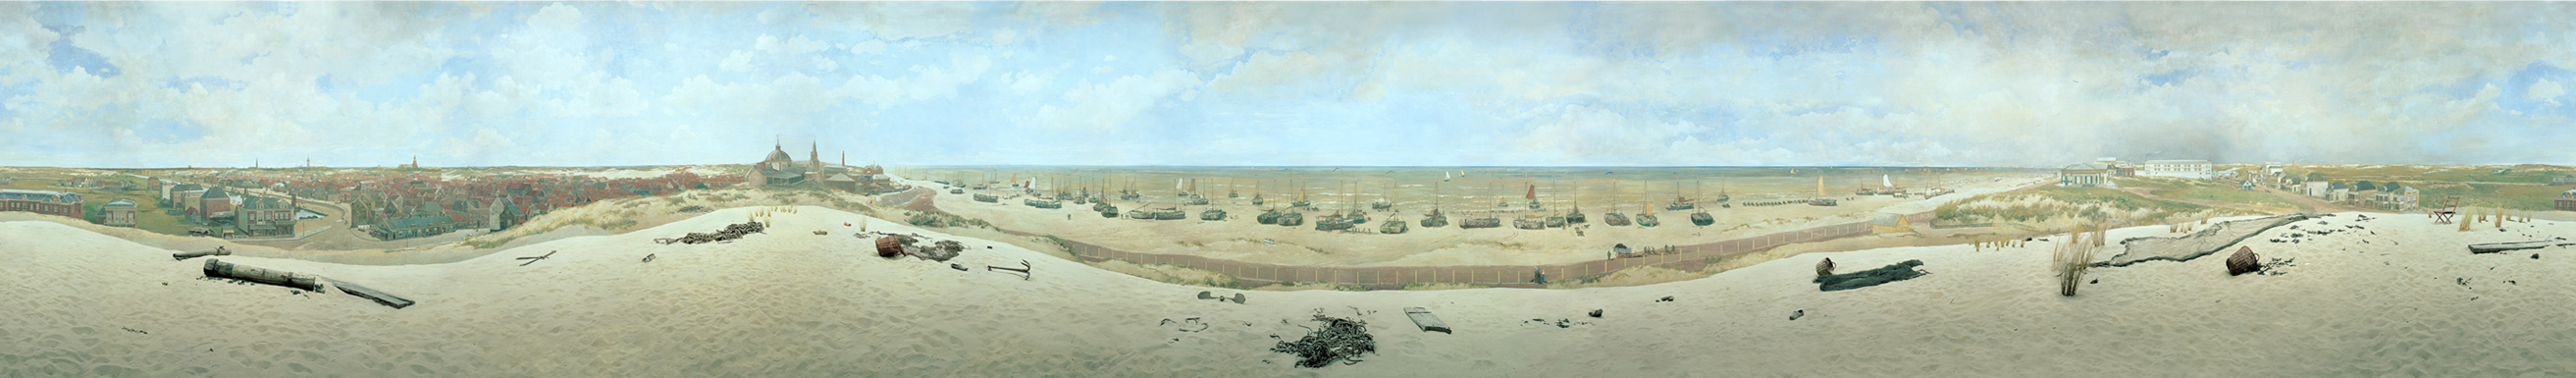 File Panorama mesdag PNG - Wikimedia Commons